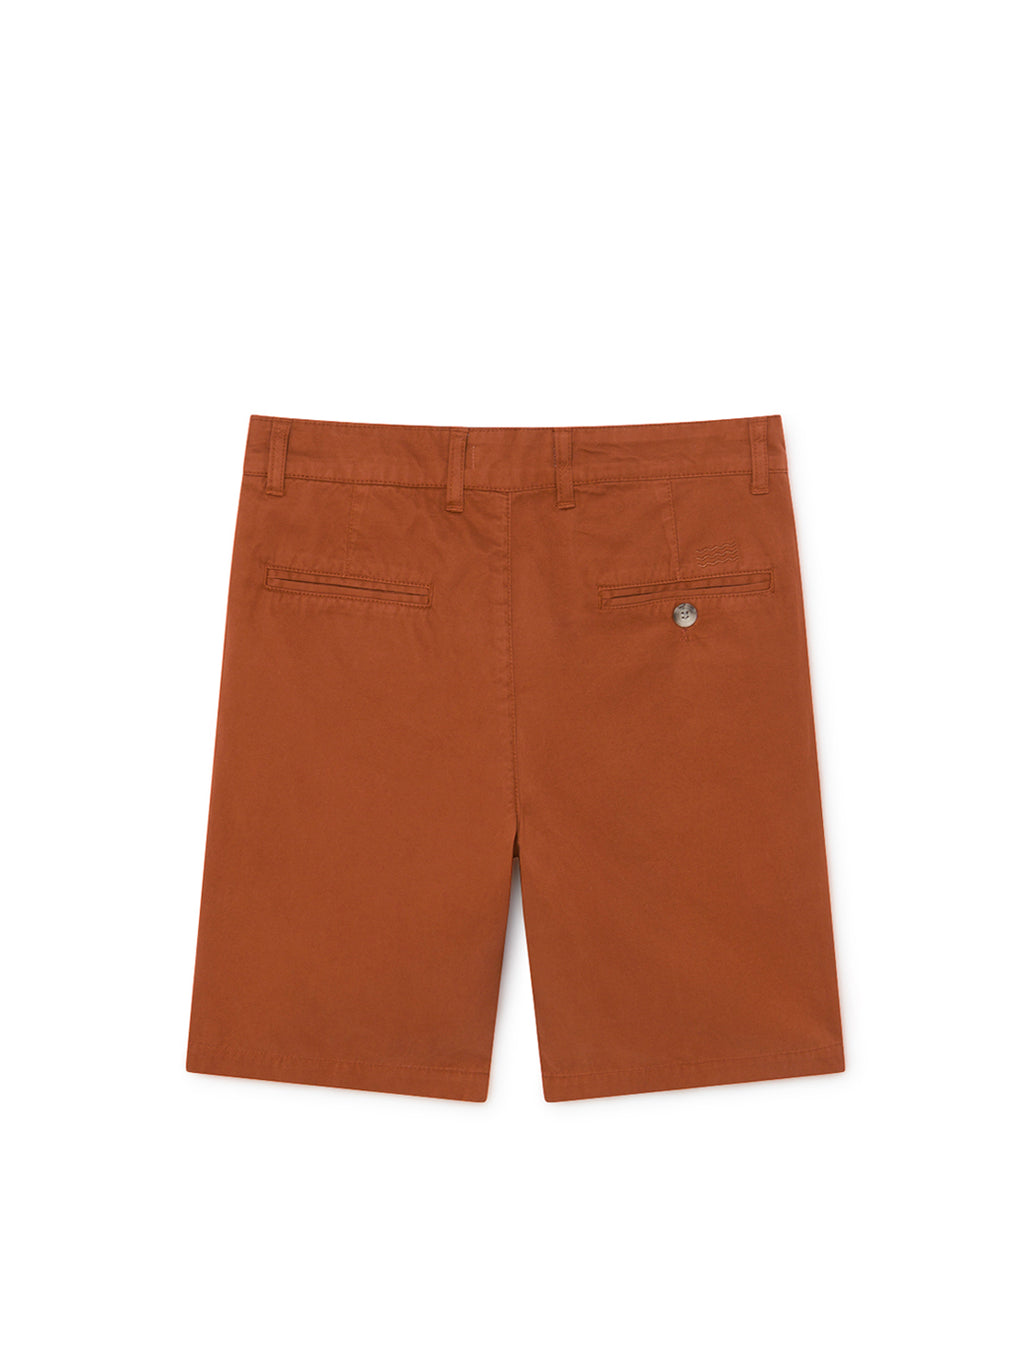 TWOTHIRDS Mens Shorts: La Nave - Roof back